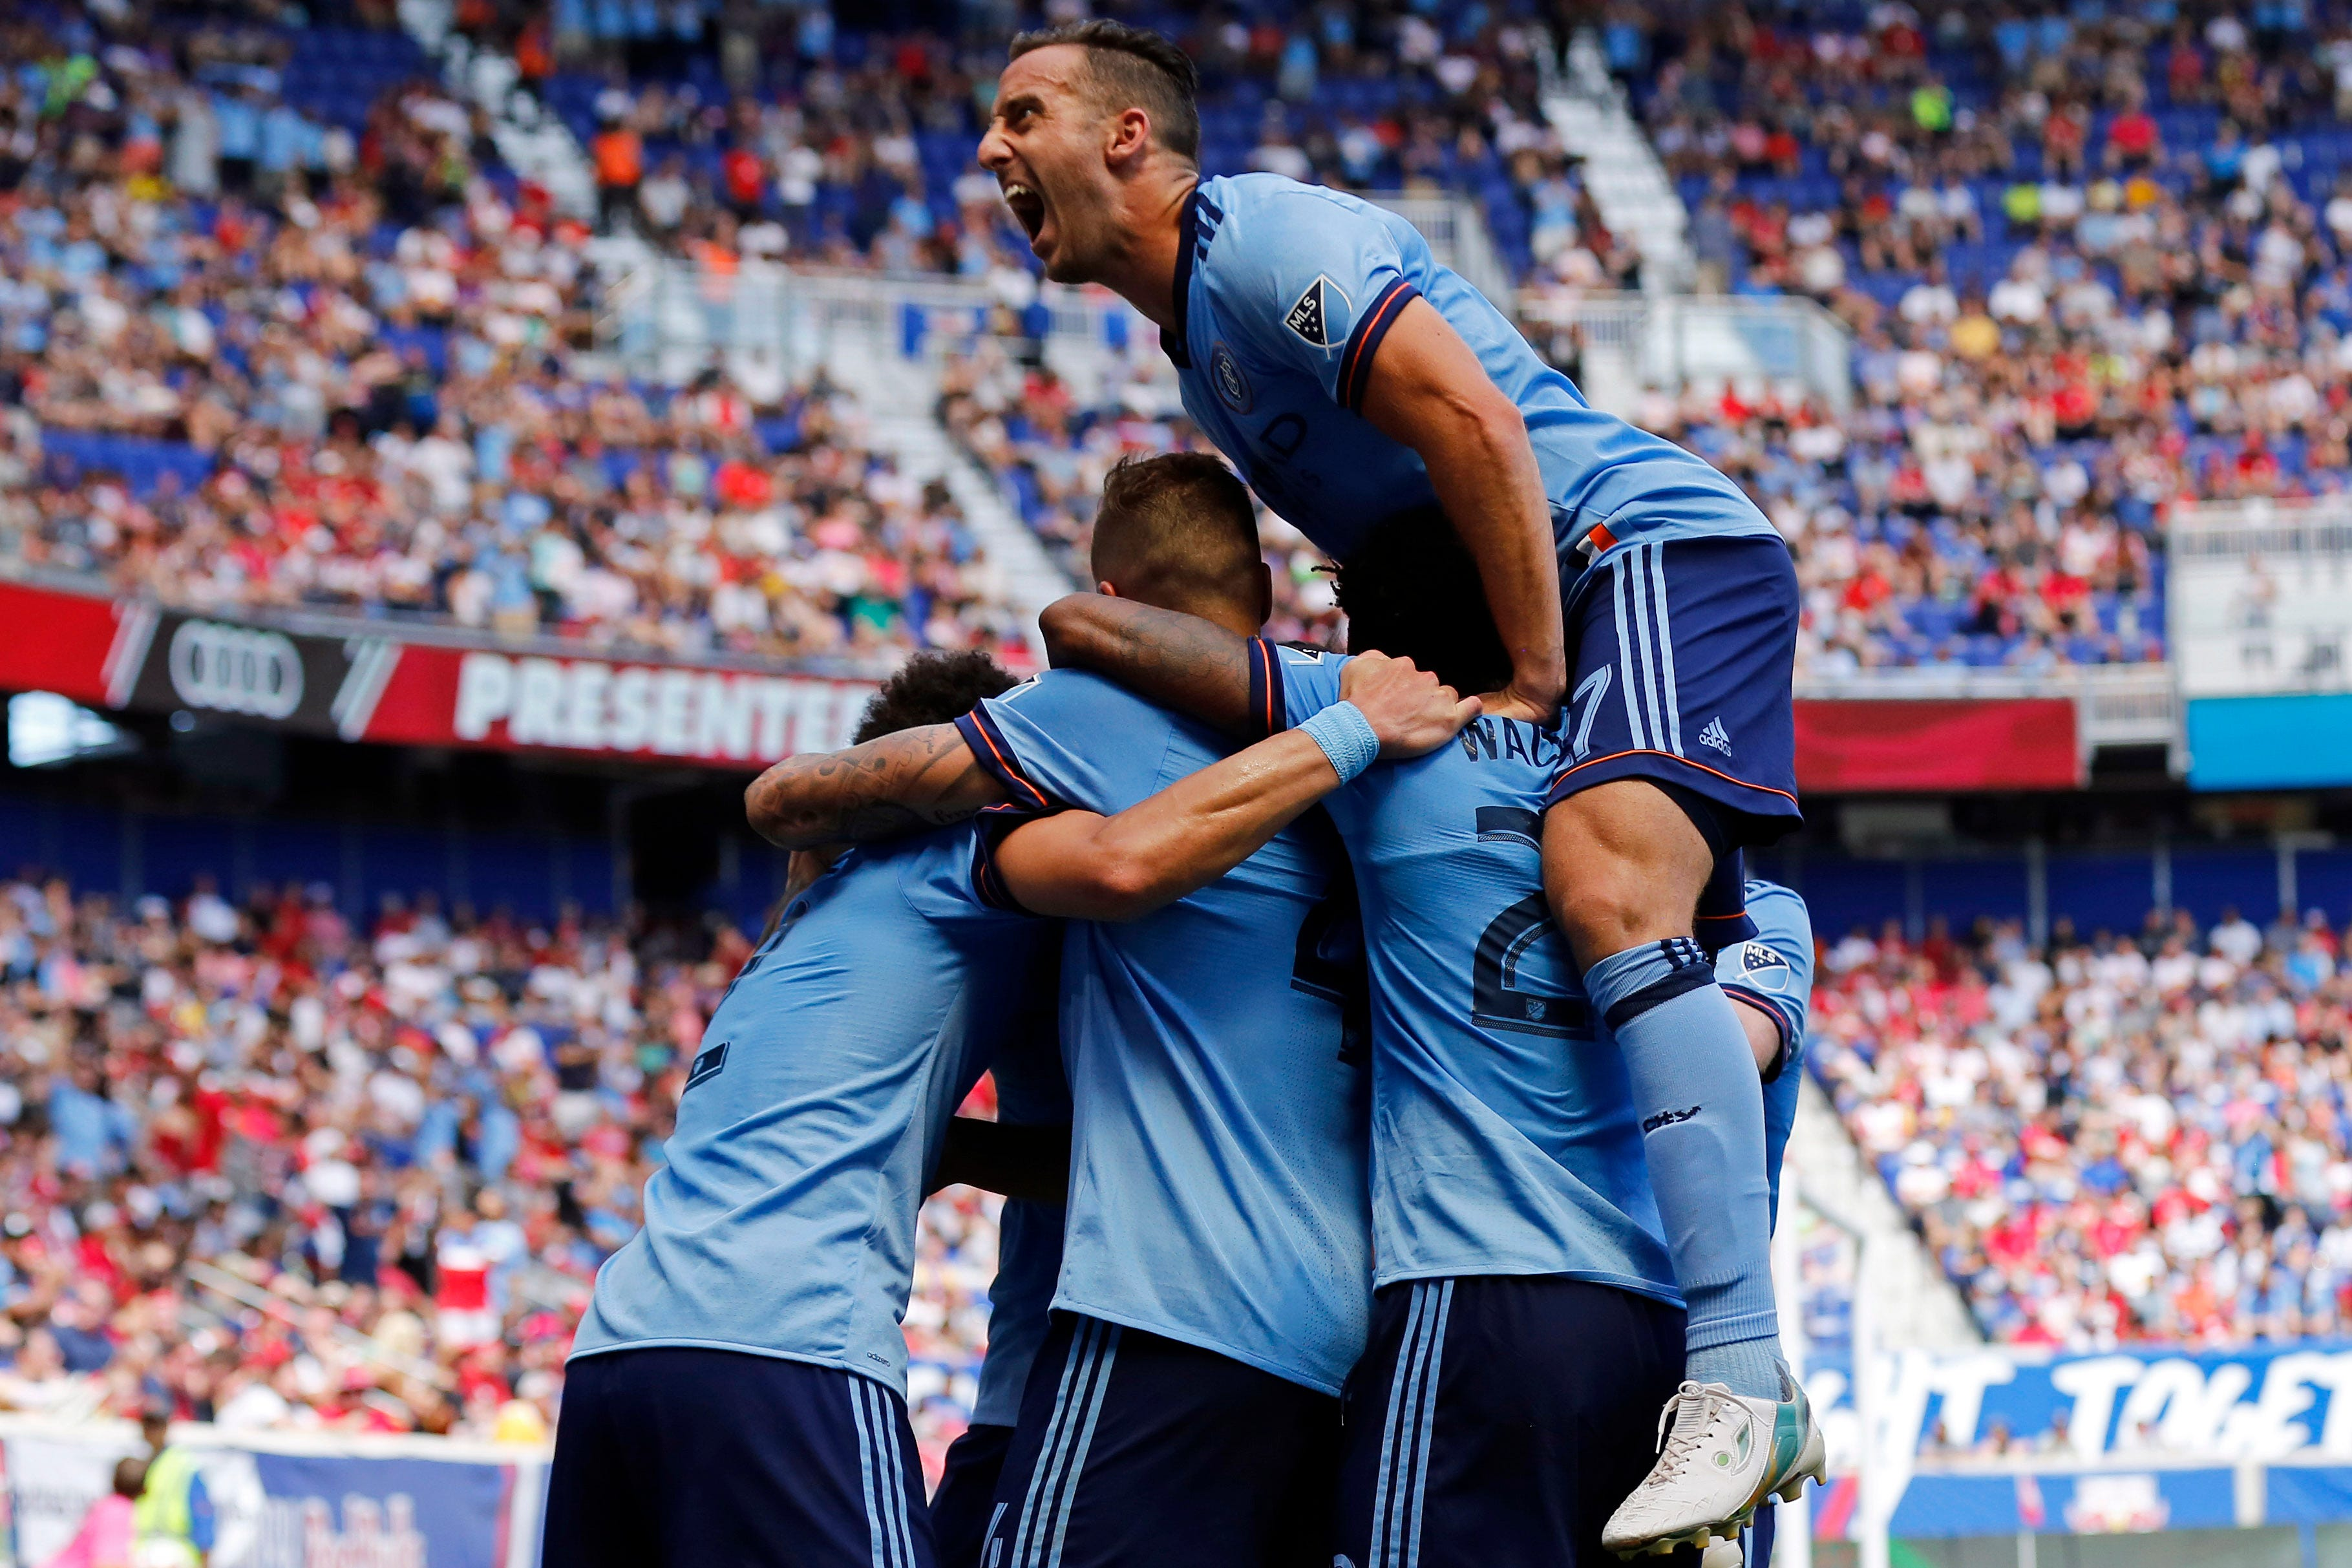 NYCFC claims rare win over New York Red Bulls in Hudson River Derby